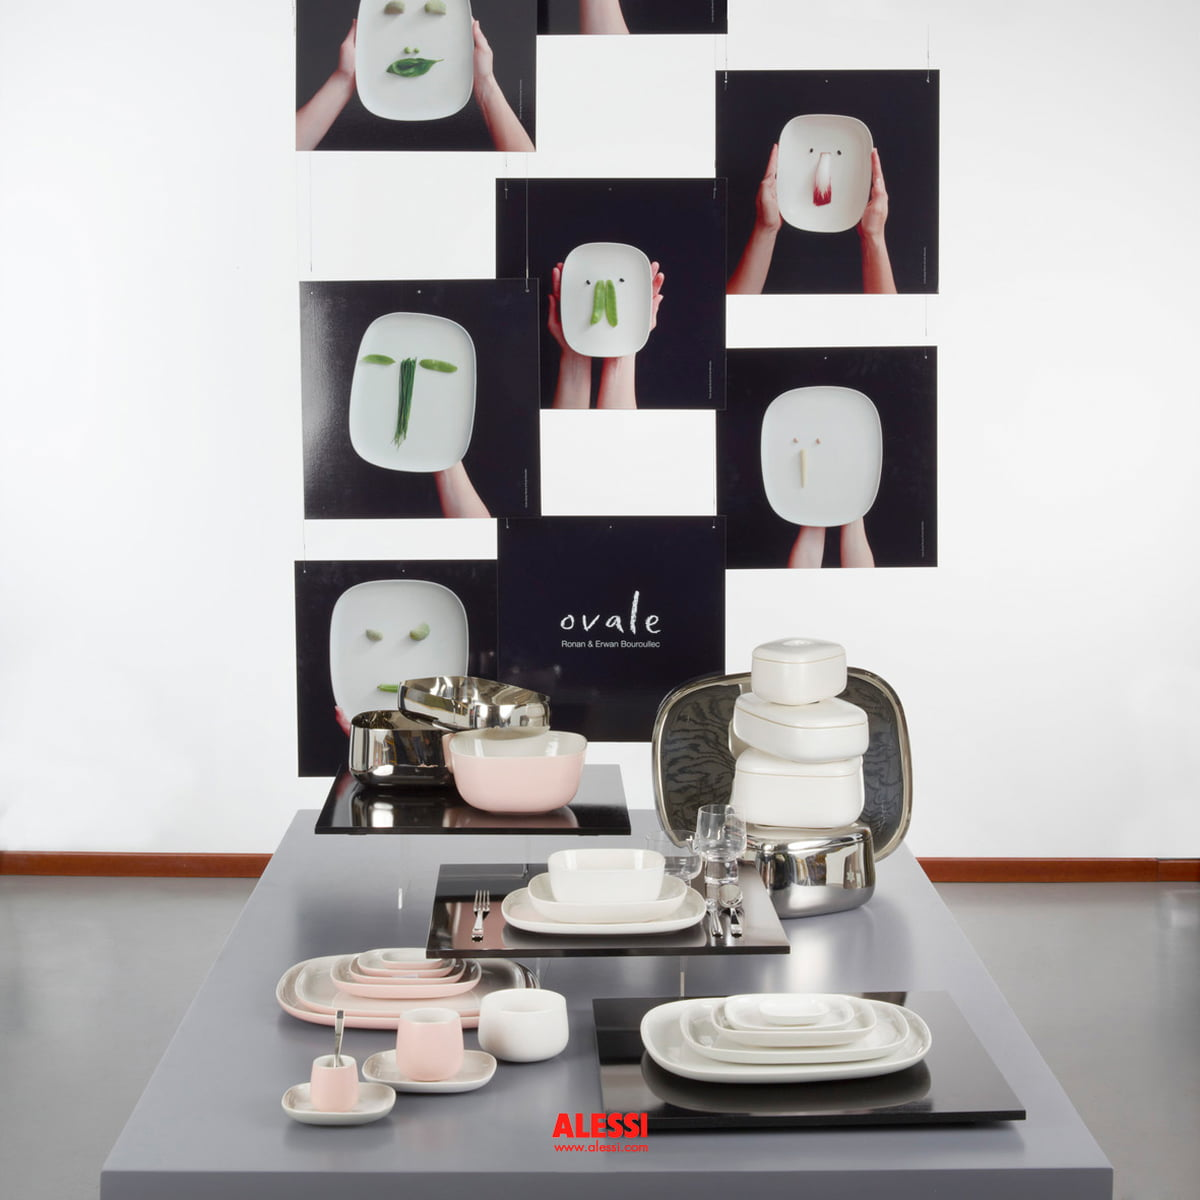 ovale dinner plate by alessi in the shop - ovale collection by alessi